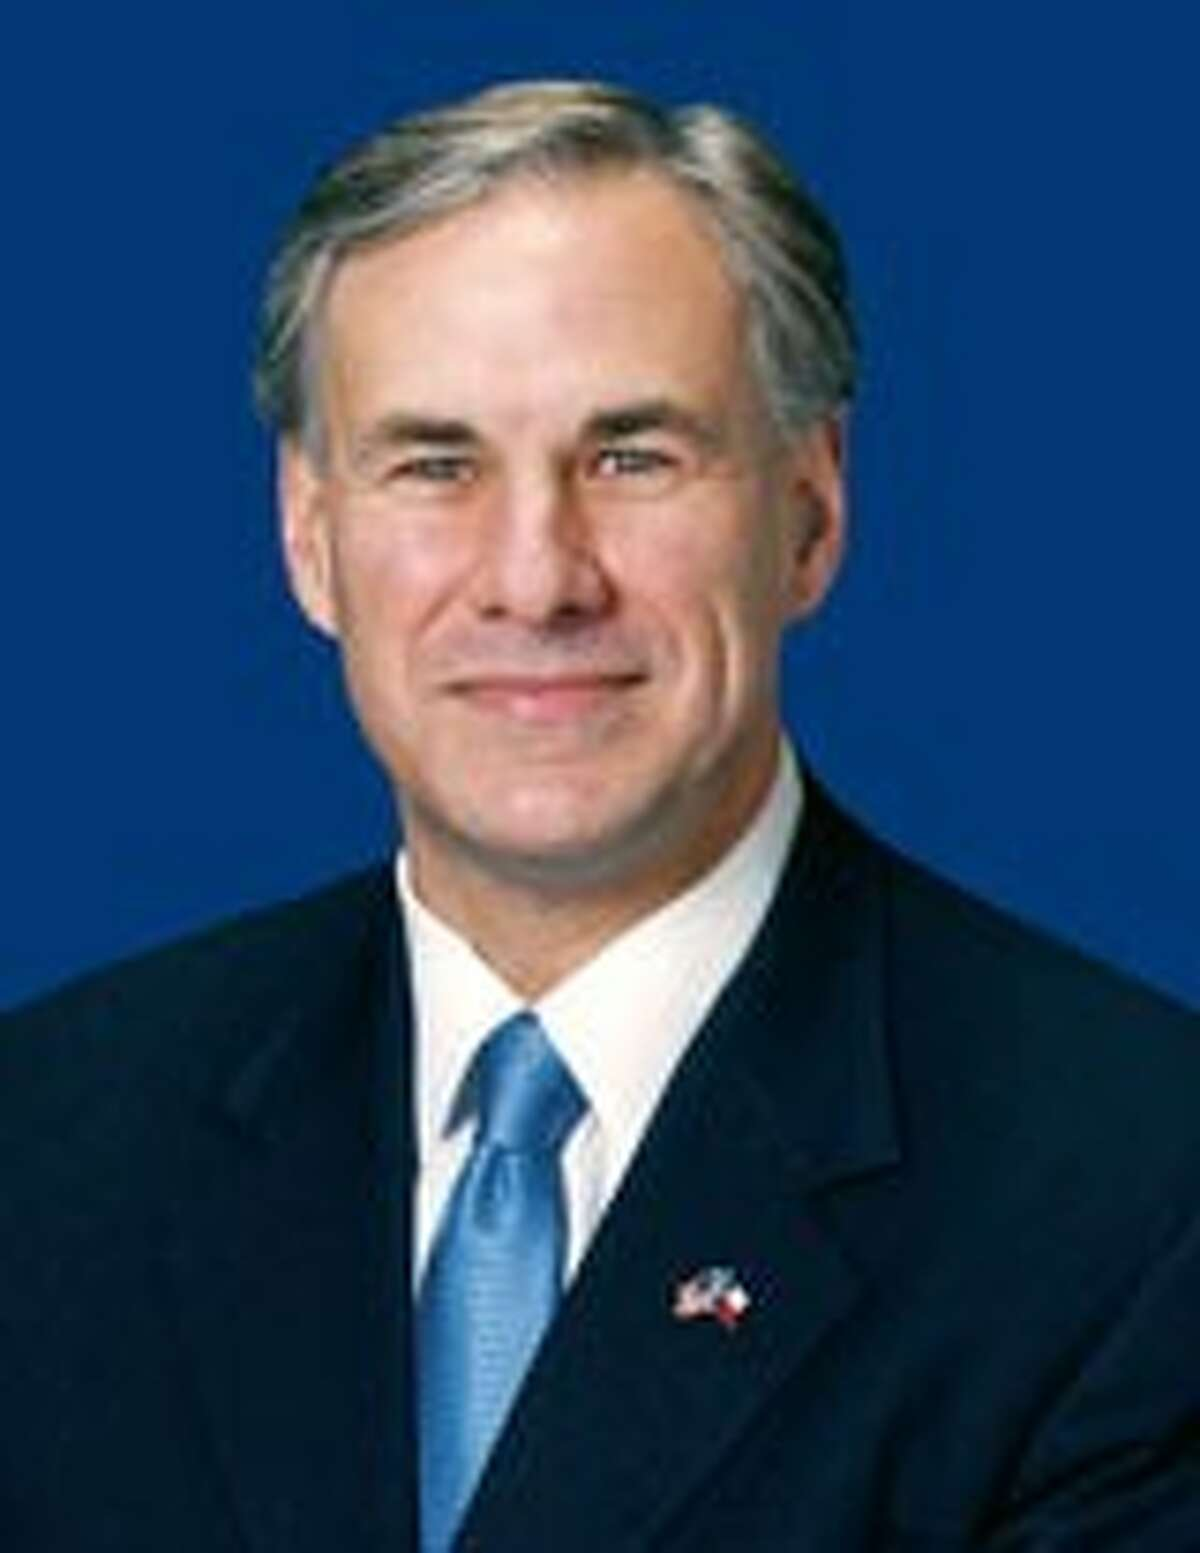 Texas Attorney General Greg Abbott (Photo from www.oag.state.tx.us)